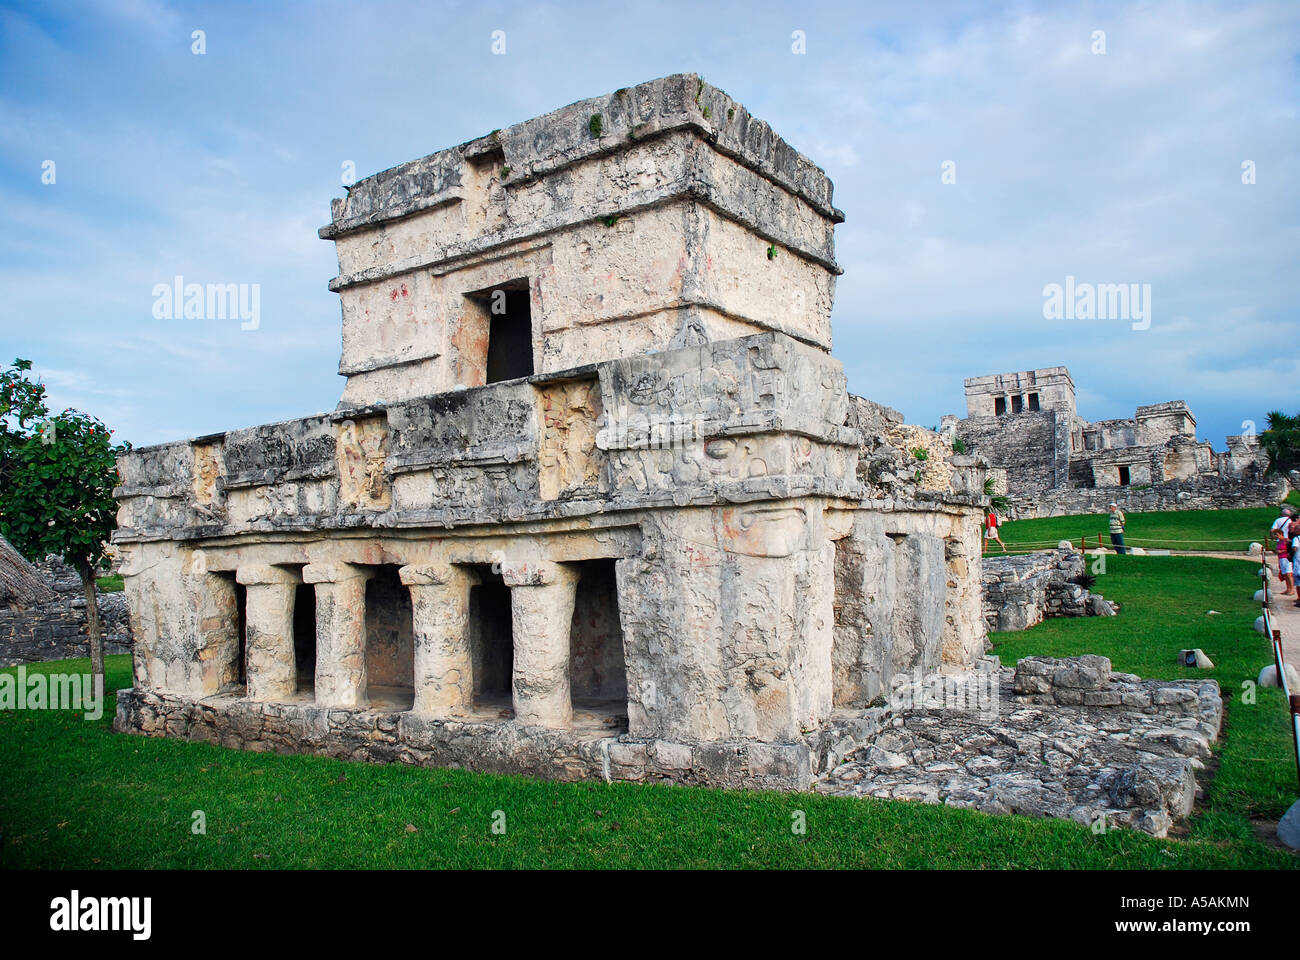 Cancun Trip The Ruins Of Ancient Mayan Town Tulum Is A Popular Day Trip From